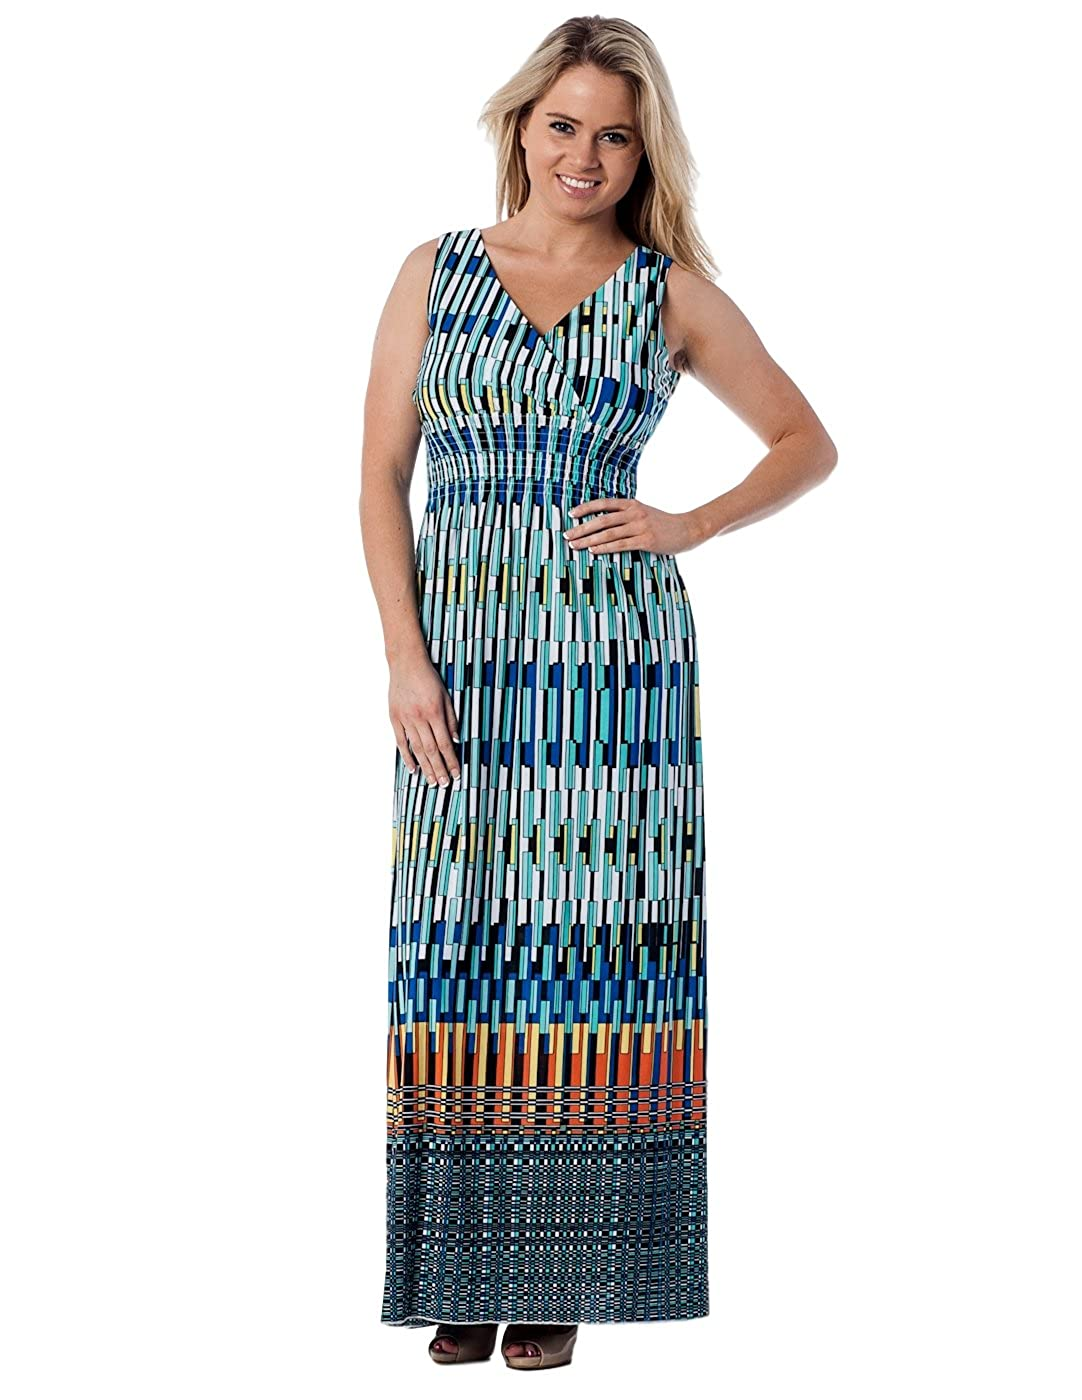 dadde2bacfc Sleeveless with covered elastic smocking floor length maxi dress! Full  length of dress is 55 inches from top to bottom. Effortlessly Chic!